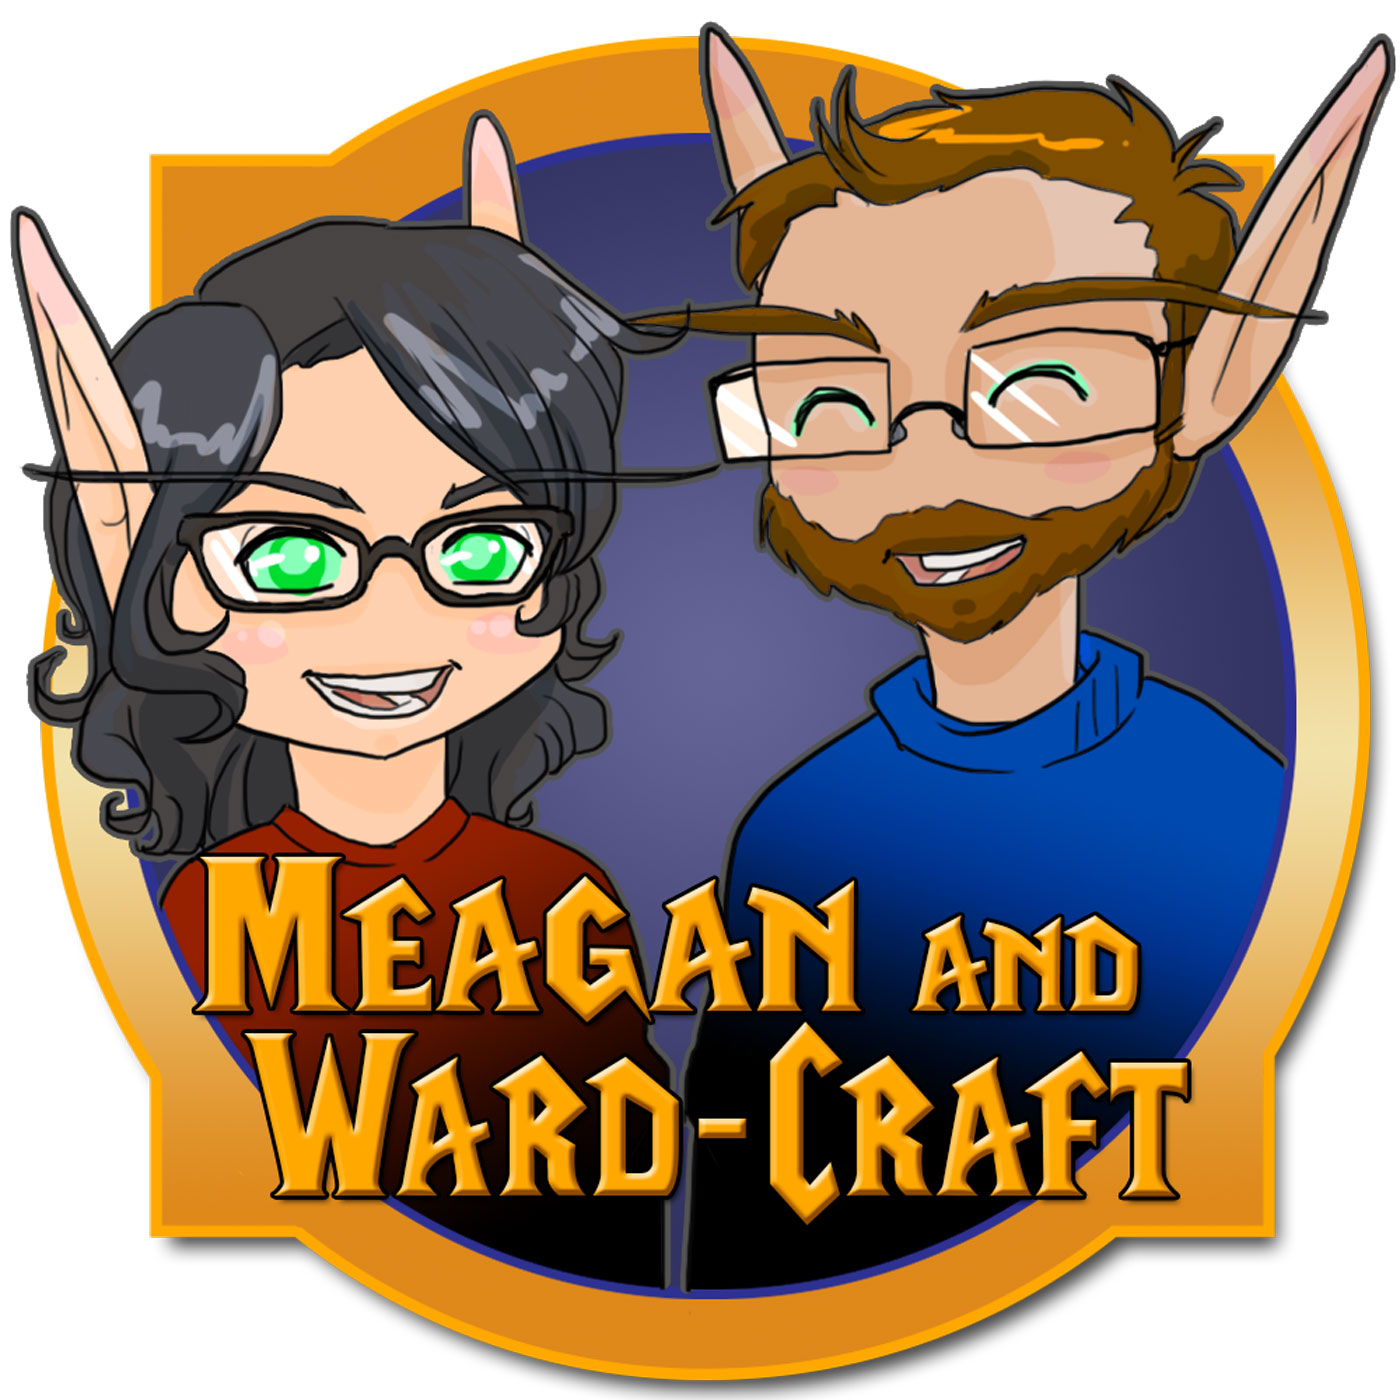 Meagan and Ward-Craft